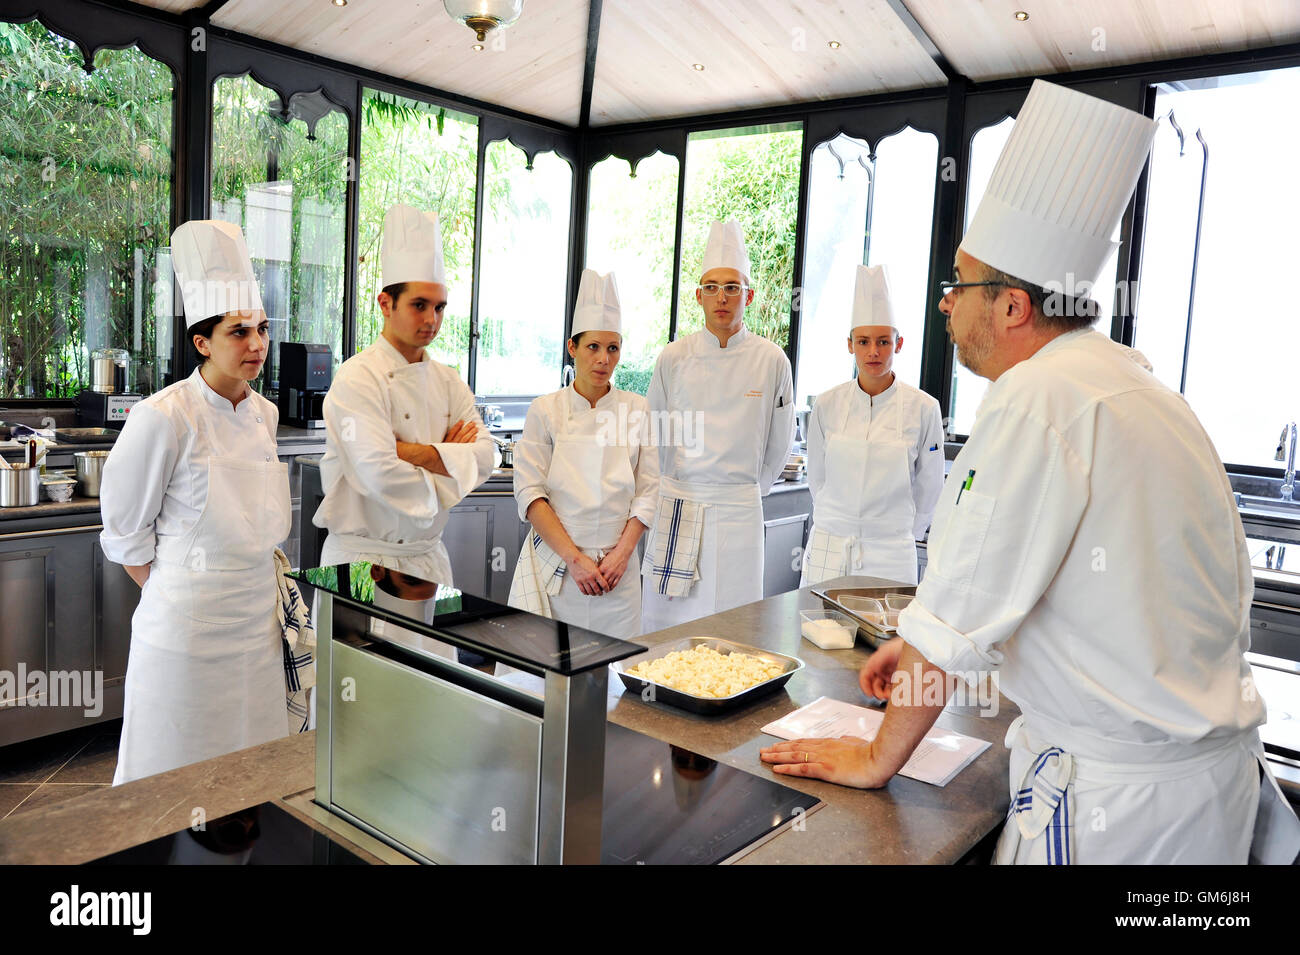 Cookery school at Eugénie-les bains, France - Stock Image